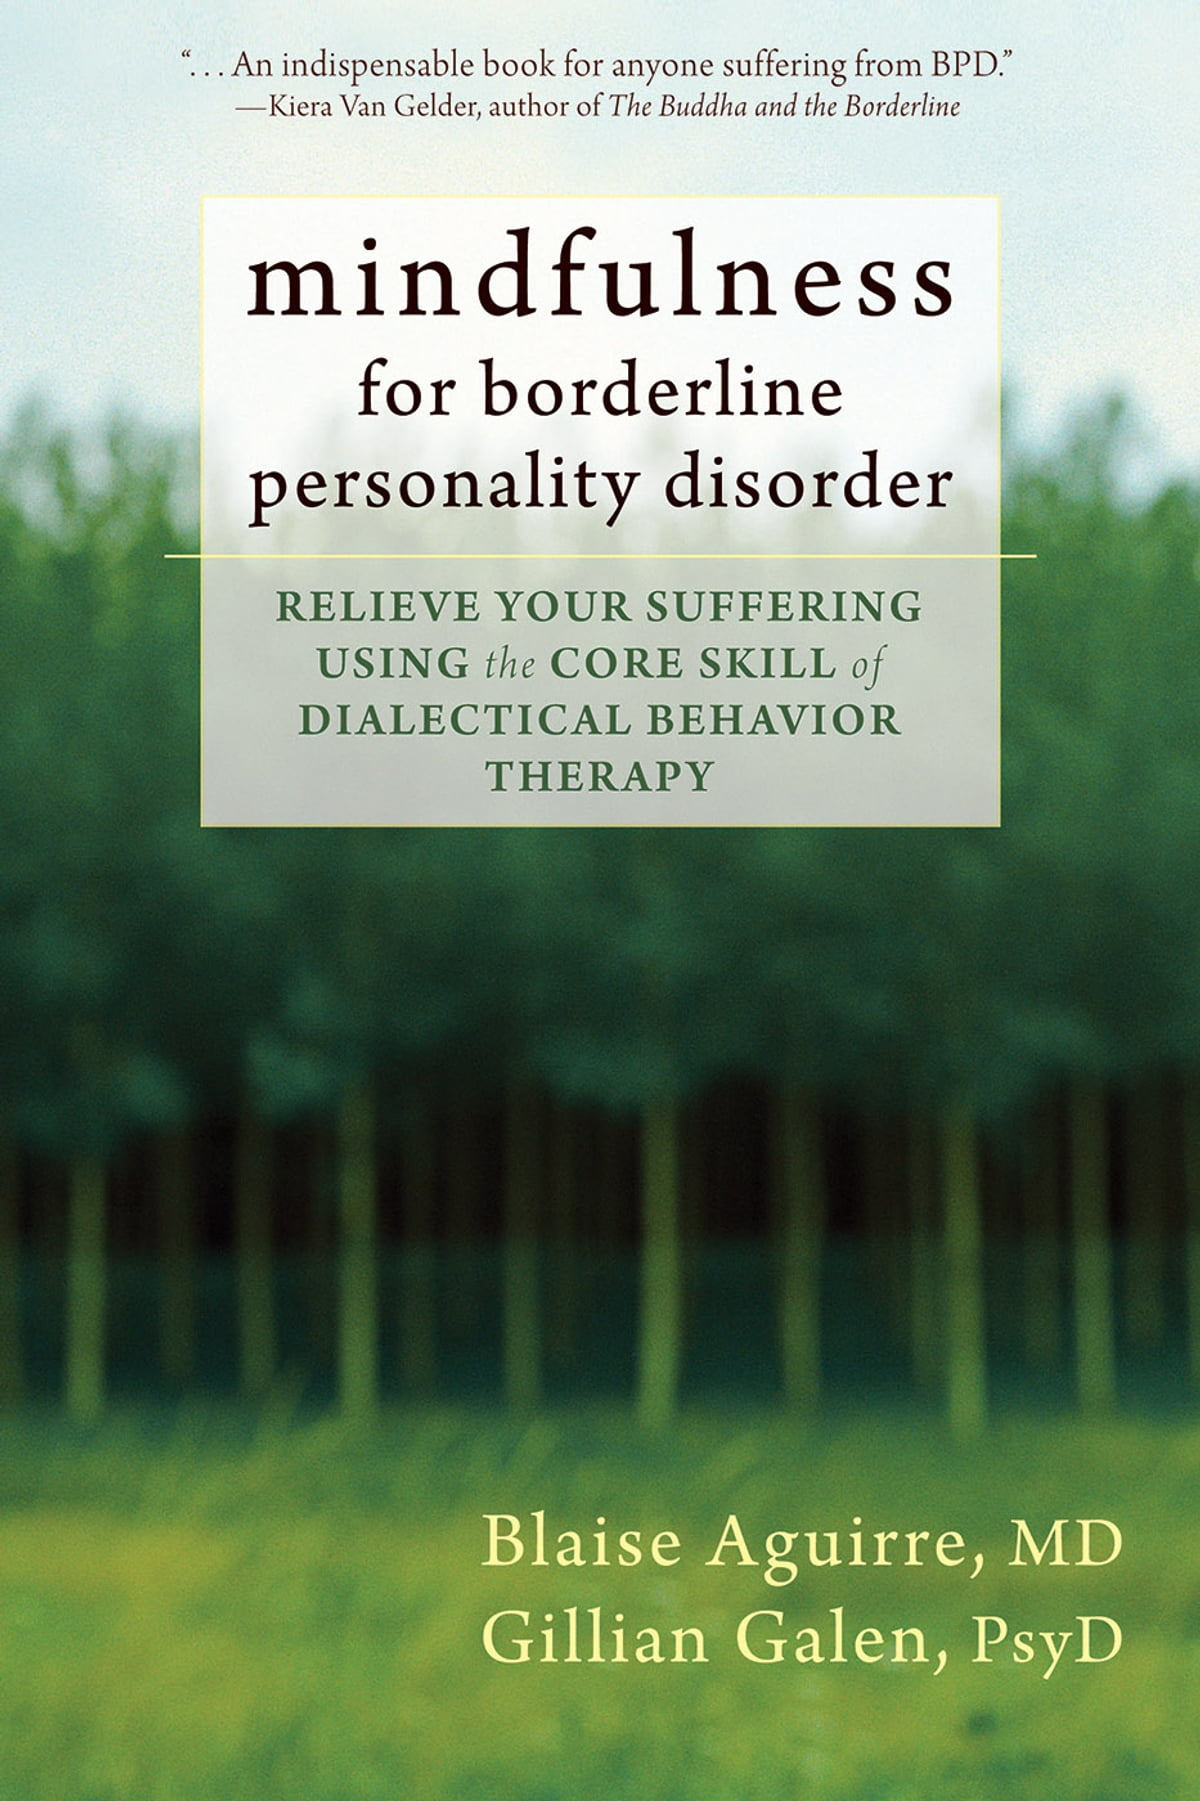 mindfulness for borderline personality disorder pdf